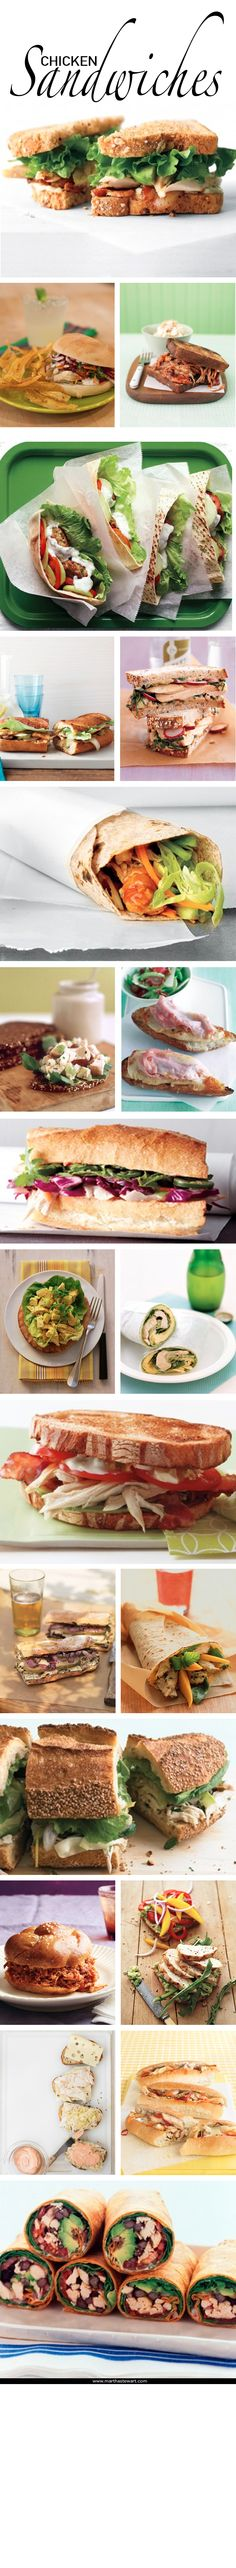 Chicken Sandwiches | Martha Stewart Living